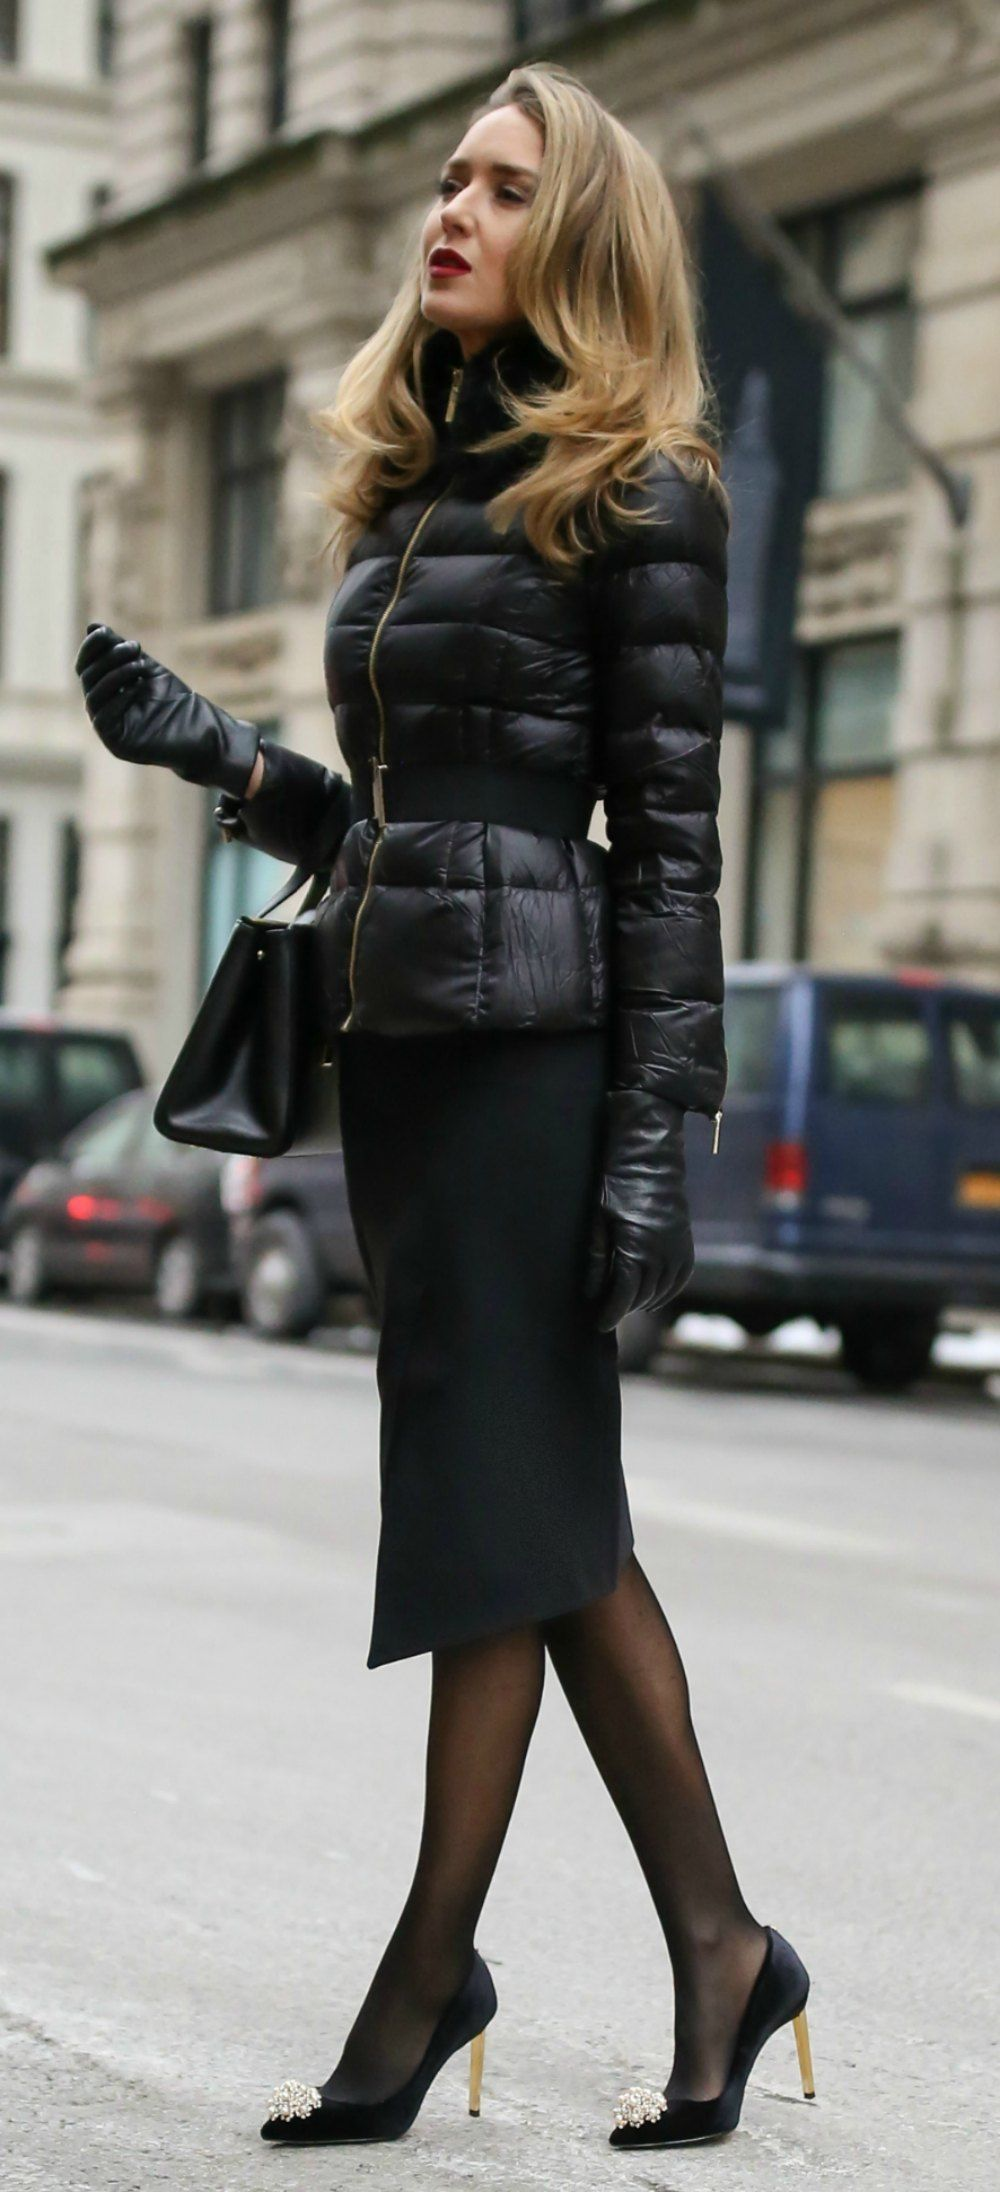 a044072e4 The Professional Puffer Coat // Black quilted puffer jacket with waist  belt, black asymmetrical pencil skirt, black embellished pumps, black sheer  tights, ...